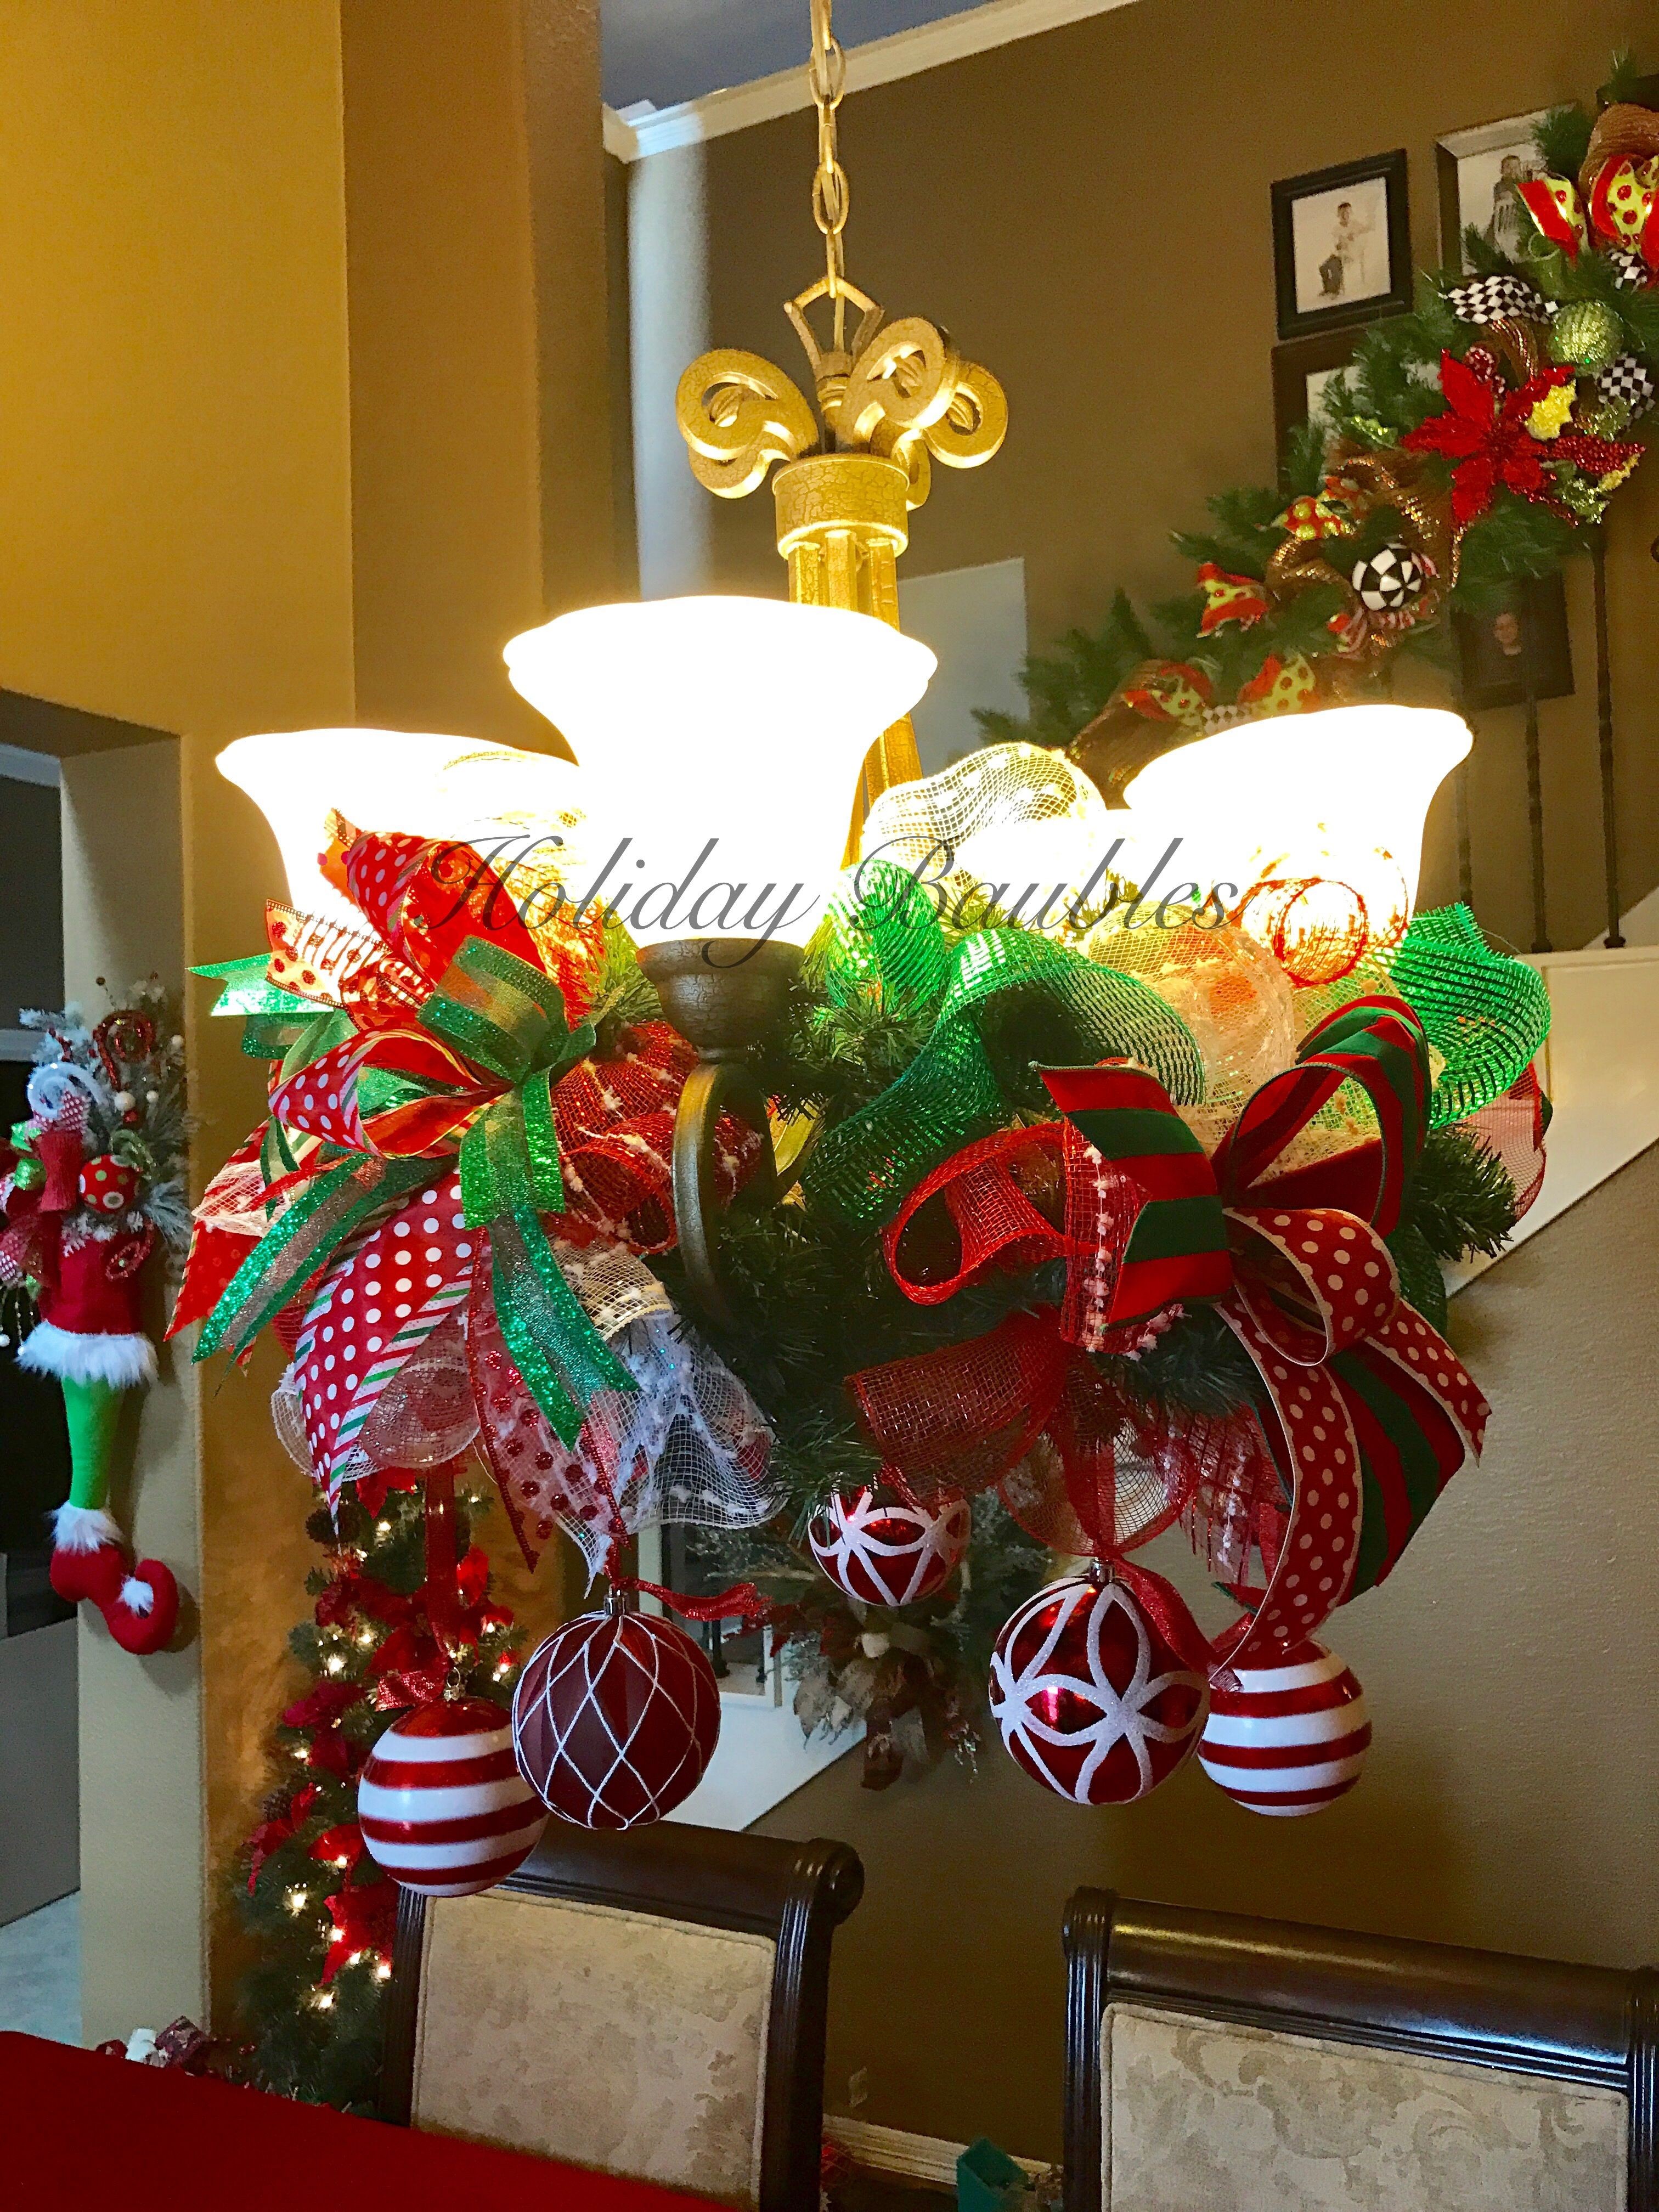 Chandelier garland by holiday baubles trendy tree custom chandelier garland by holiday baubles arubaitofo Gallery